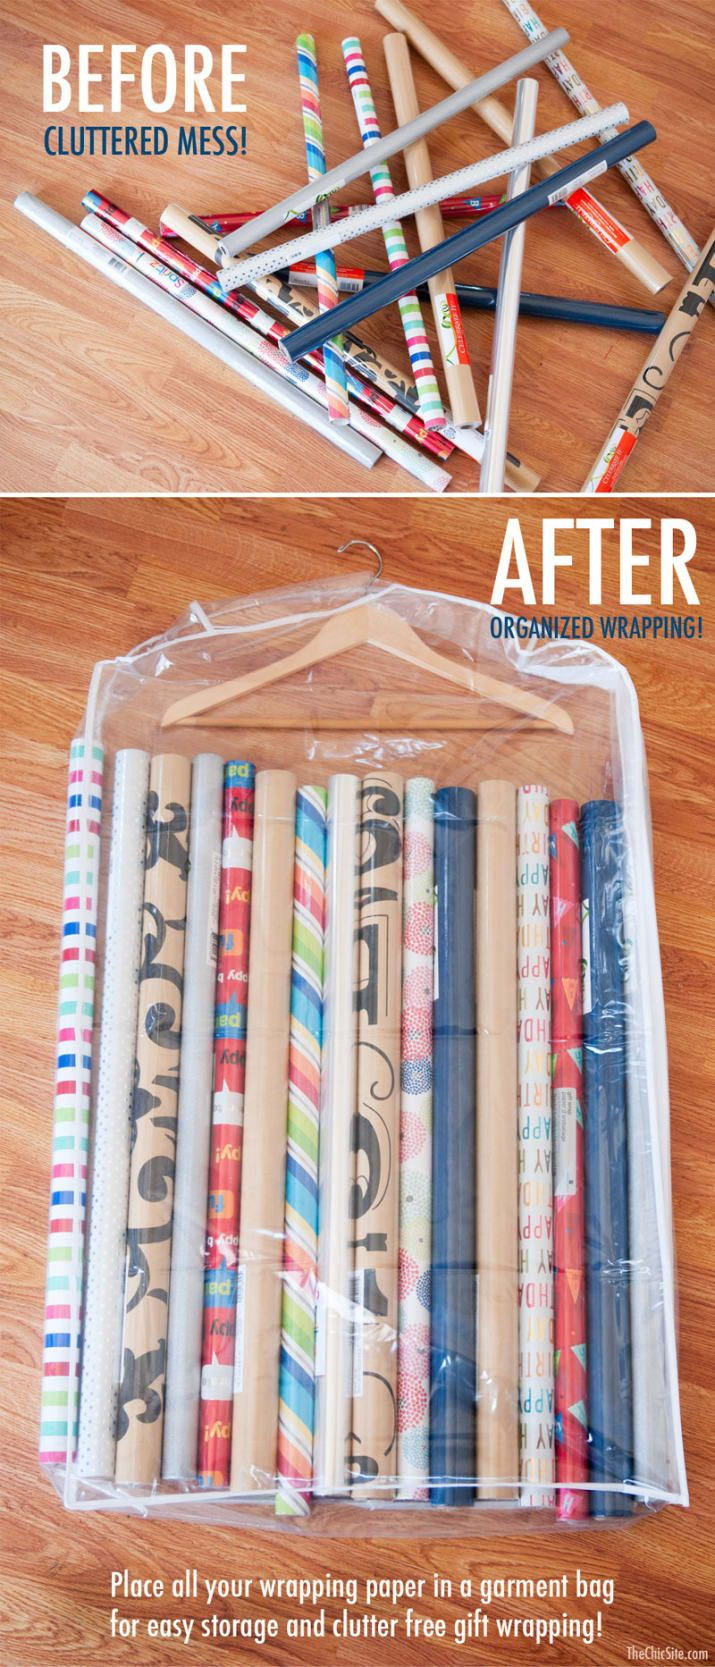 Then when it's time to get to wrapping, you can see all of your options! From The Chic Site.